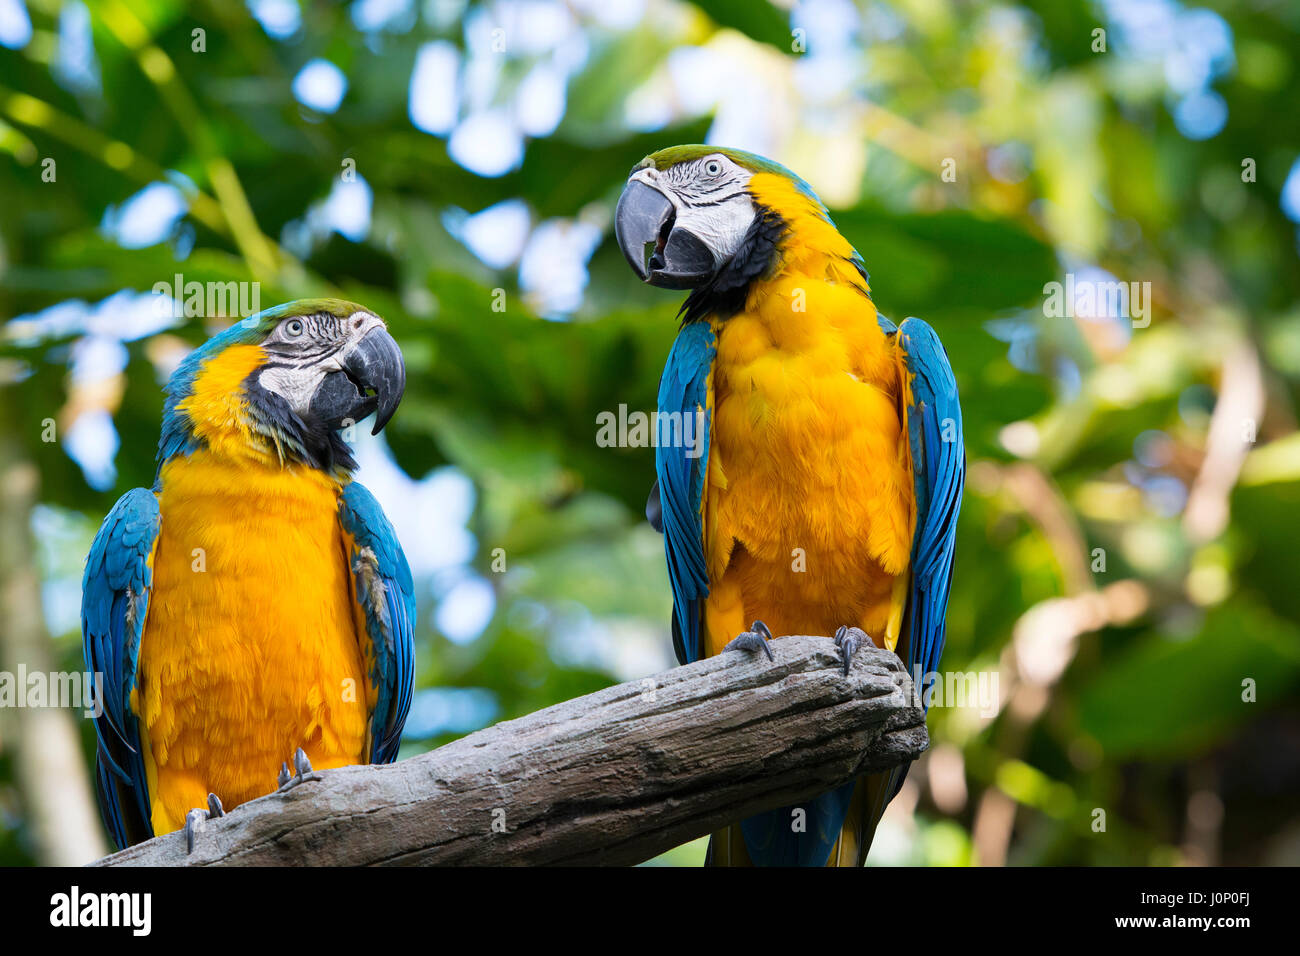 Macaw Parrots, Blue and Yellow Gold, Disney Animal Kingdom, Disney World, Orlando Florida - Stock Image